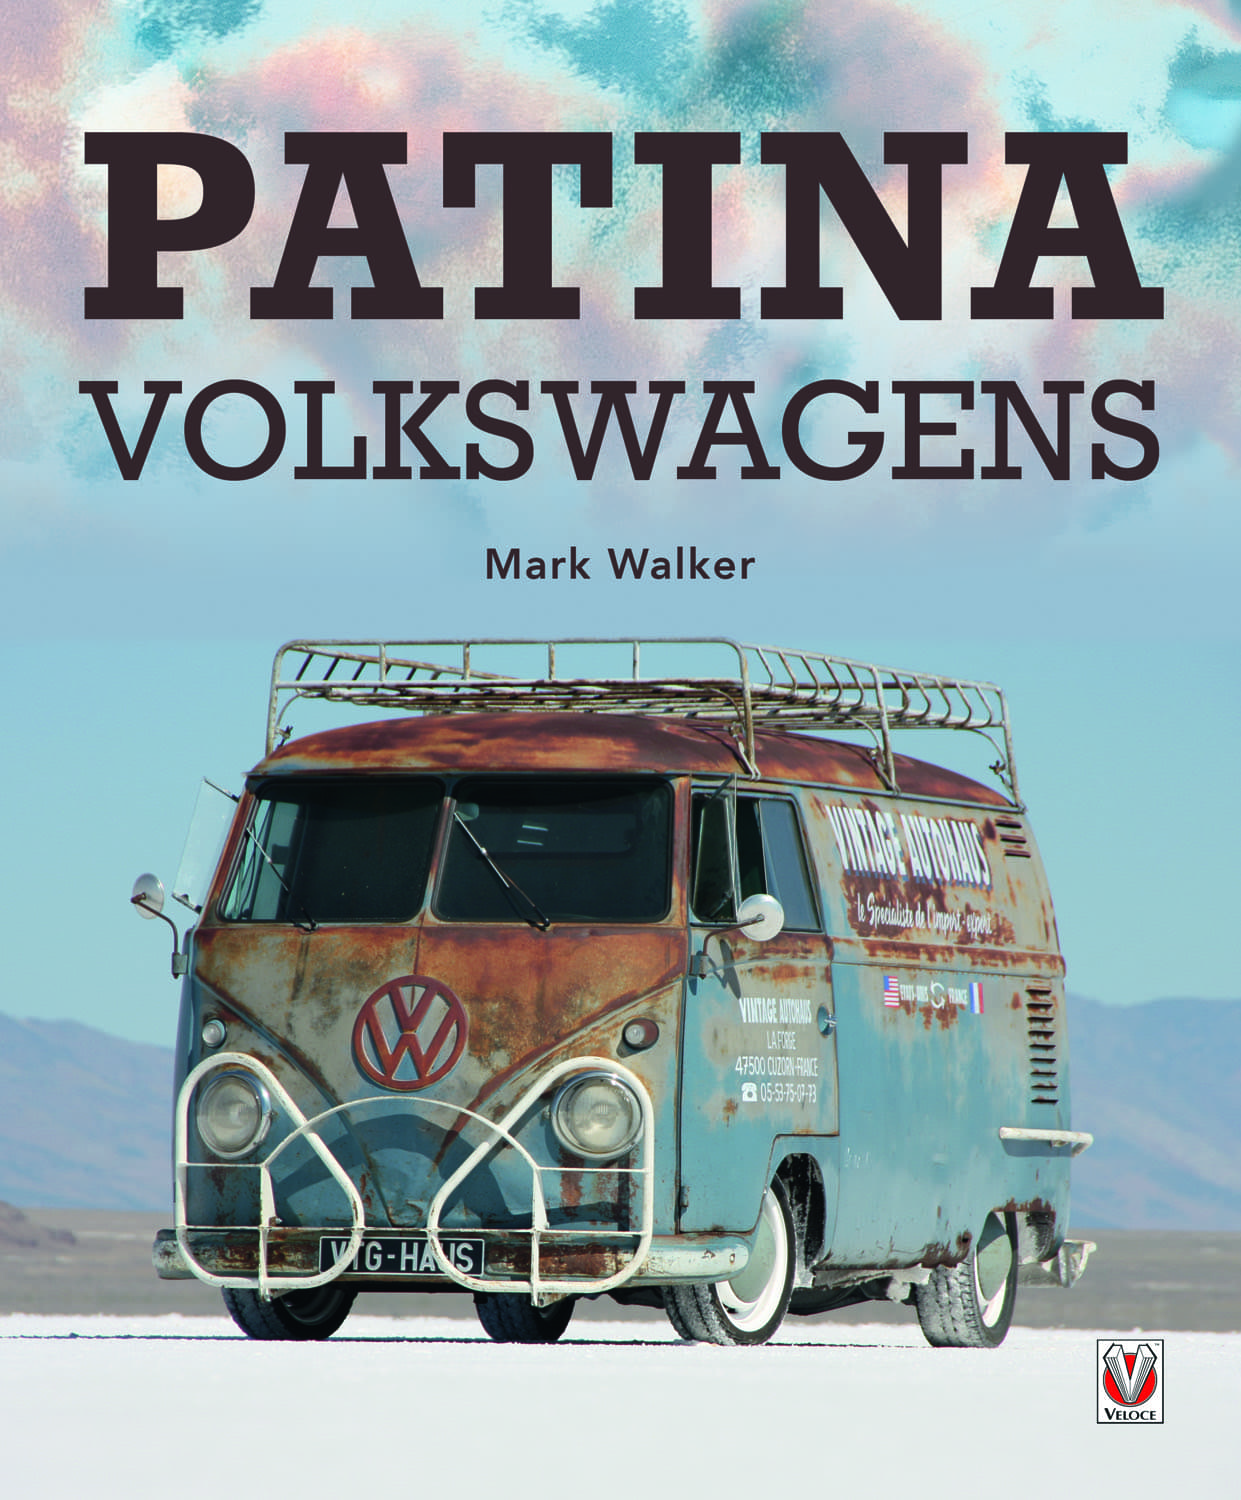 Patina Volkswagens cover